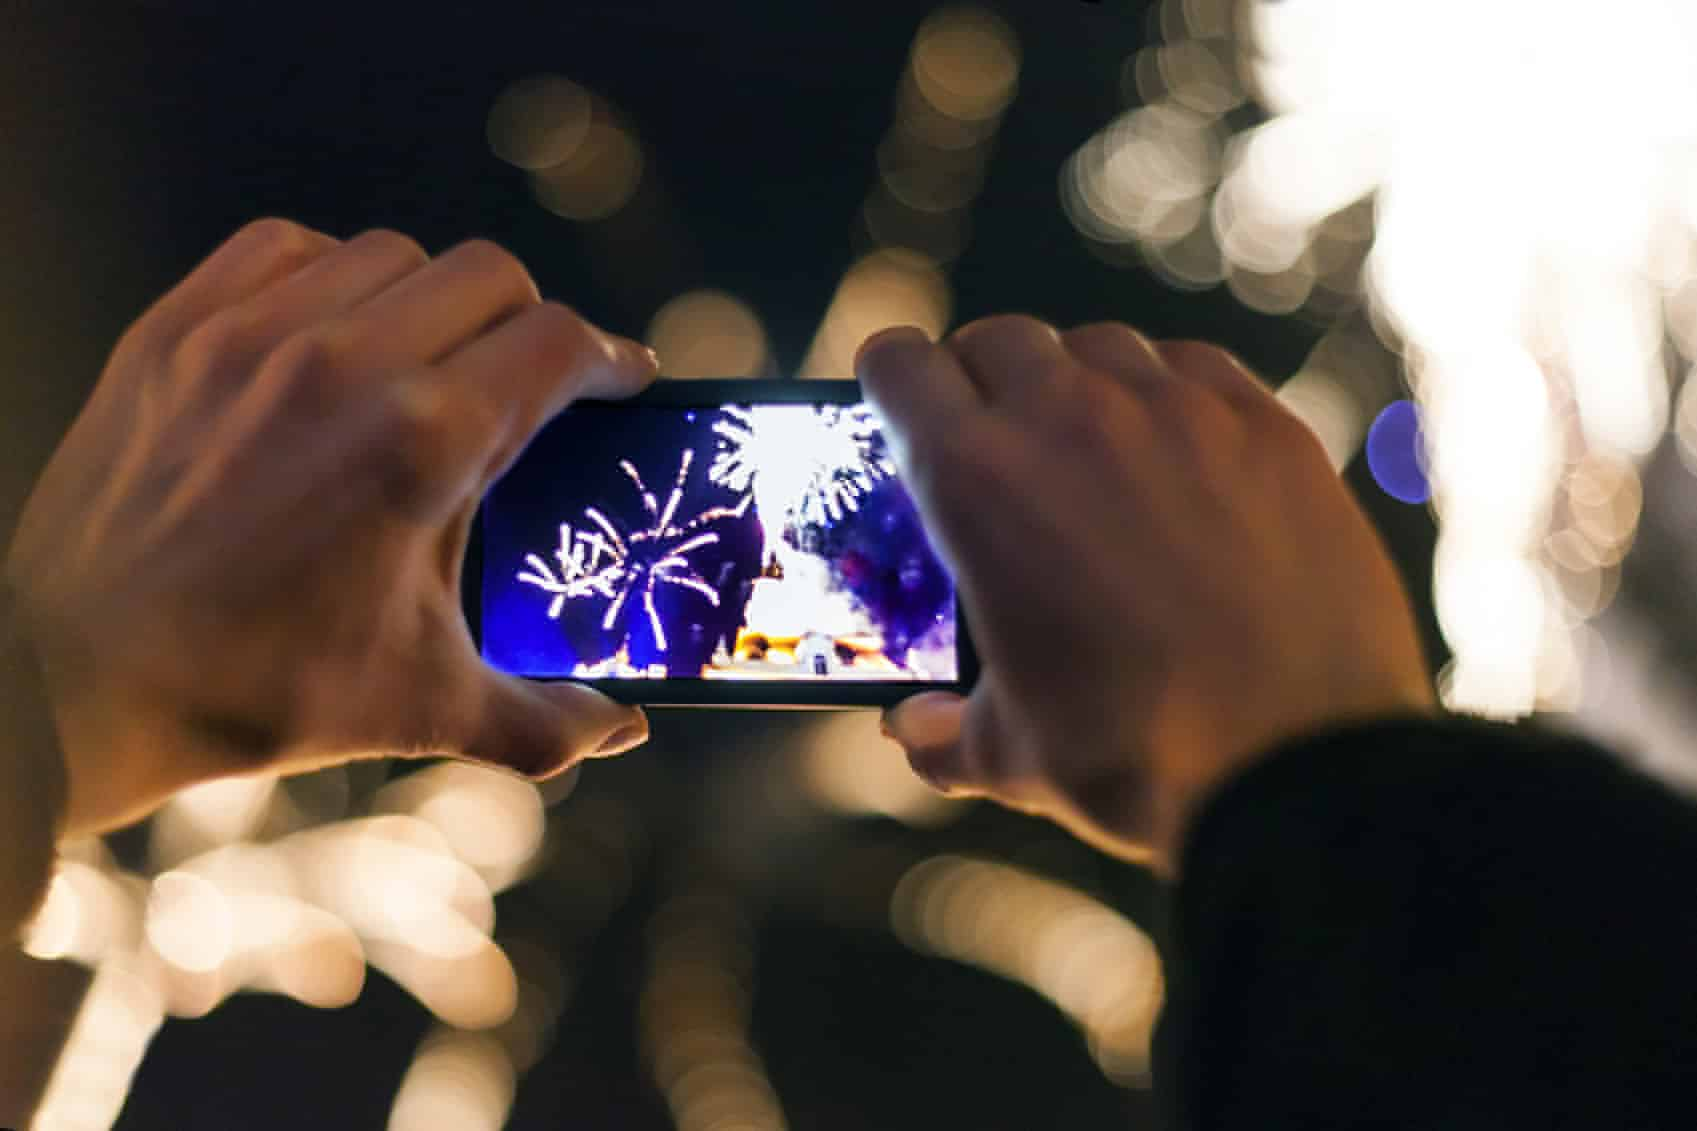 Human Hand Holding phone camera over fireworks